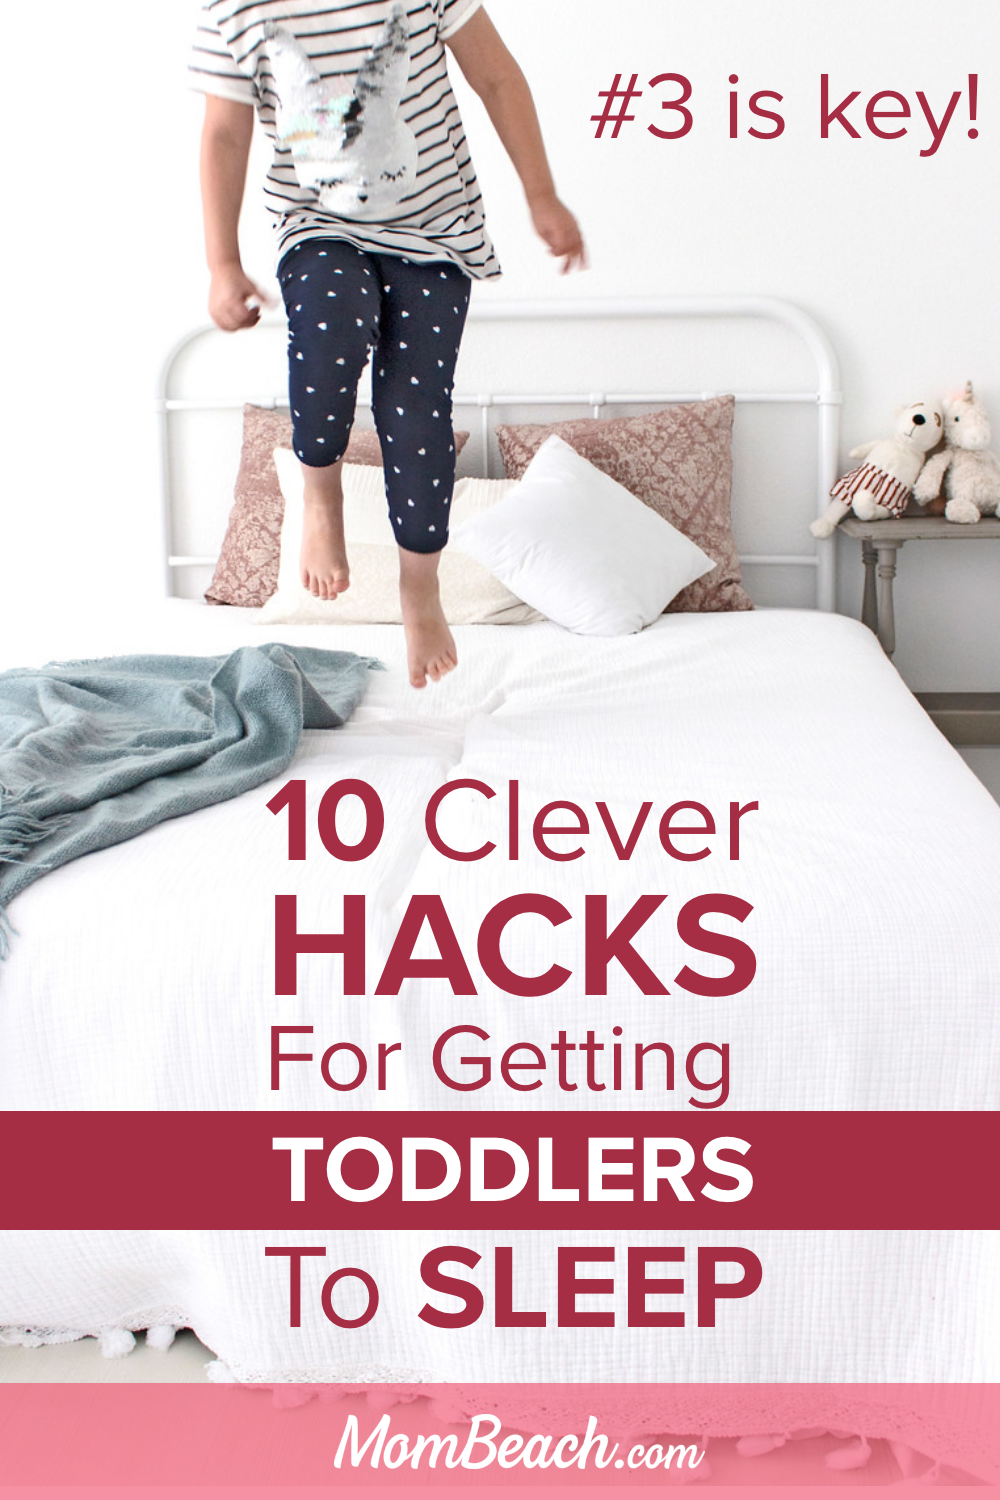 Get your toddler to sleep through the night with these clever hacks. It isn't funny when your toddler will not sleep and stays up all night. With sleep training, you can train your toddler to sleep in their own bed at night. #toddlersleep #toddlersleeptraining #toddlersleepthroughthenight #toddlersleepschedule #toddlersleepintheirownbed